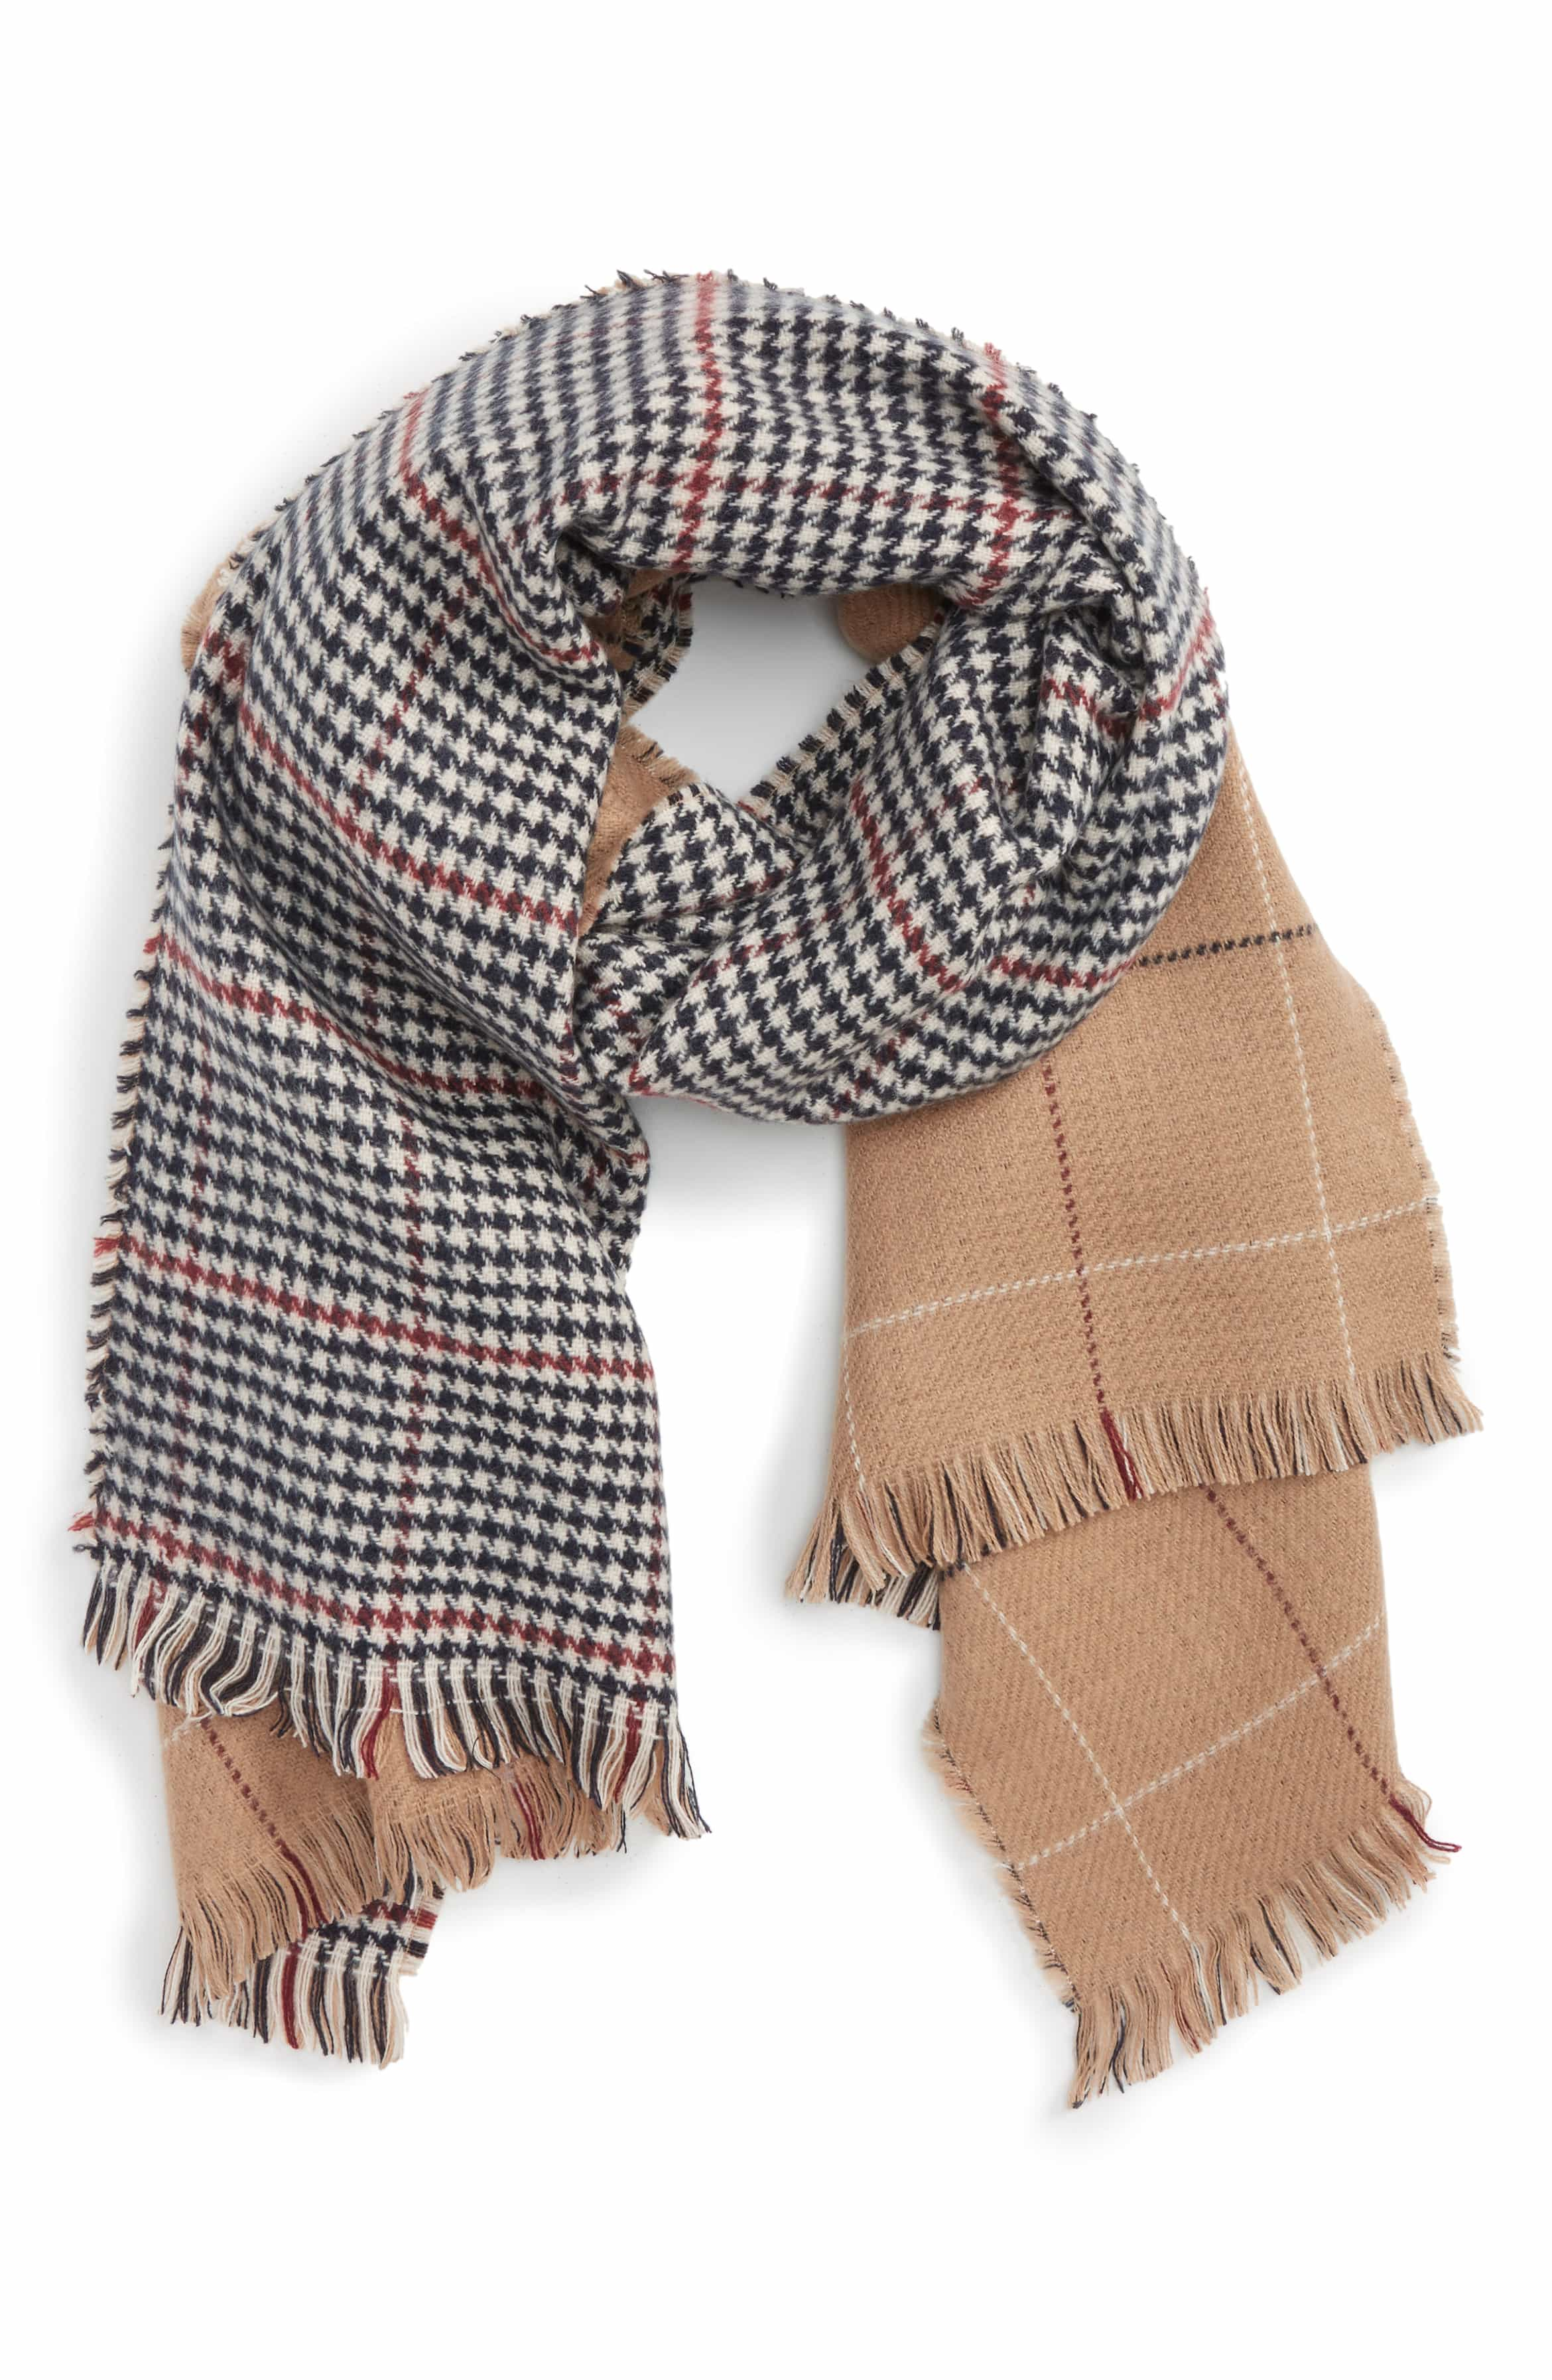 She will love this houndstooth and grid scarf!